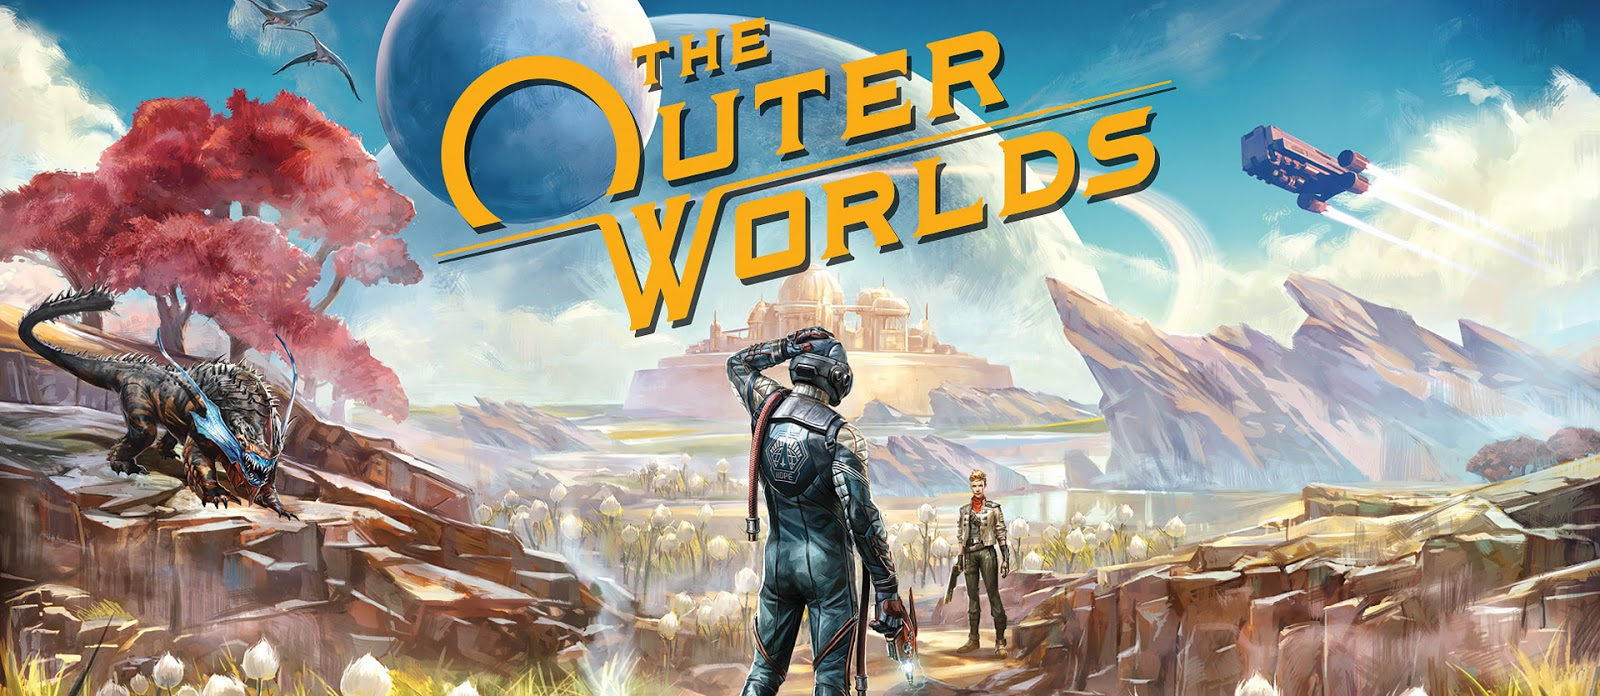 The Outer Worlds for Xbox One and Windows 10